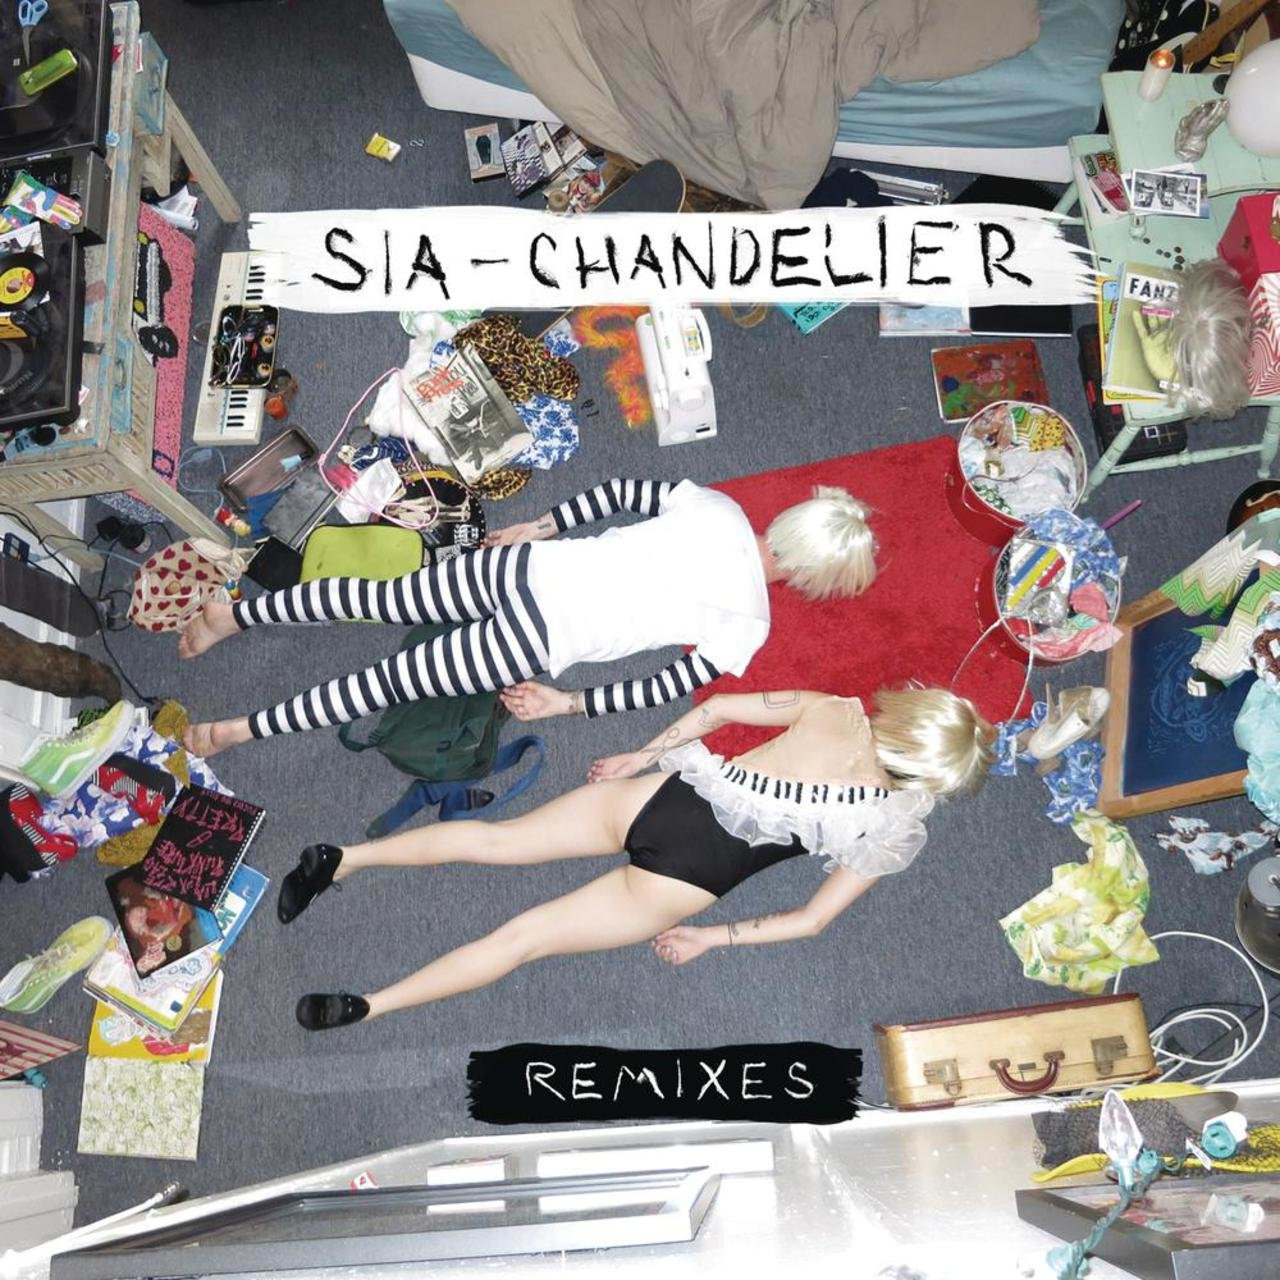 Chandelier (Remixes)